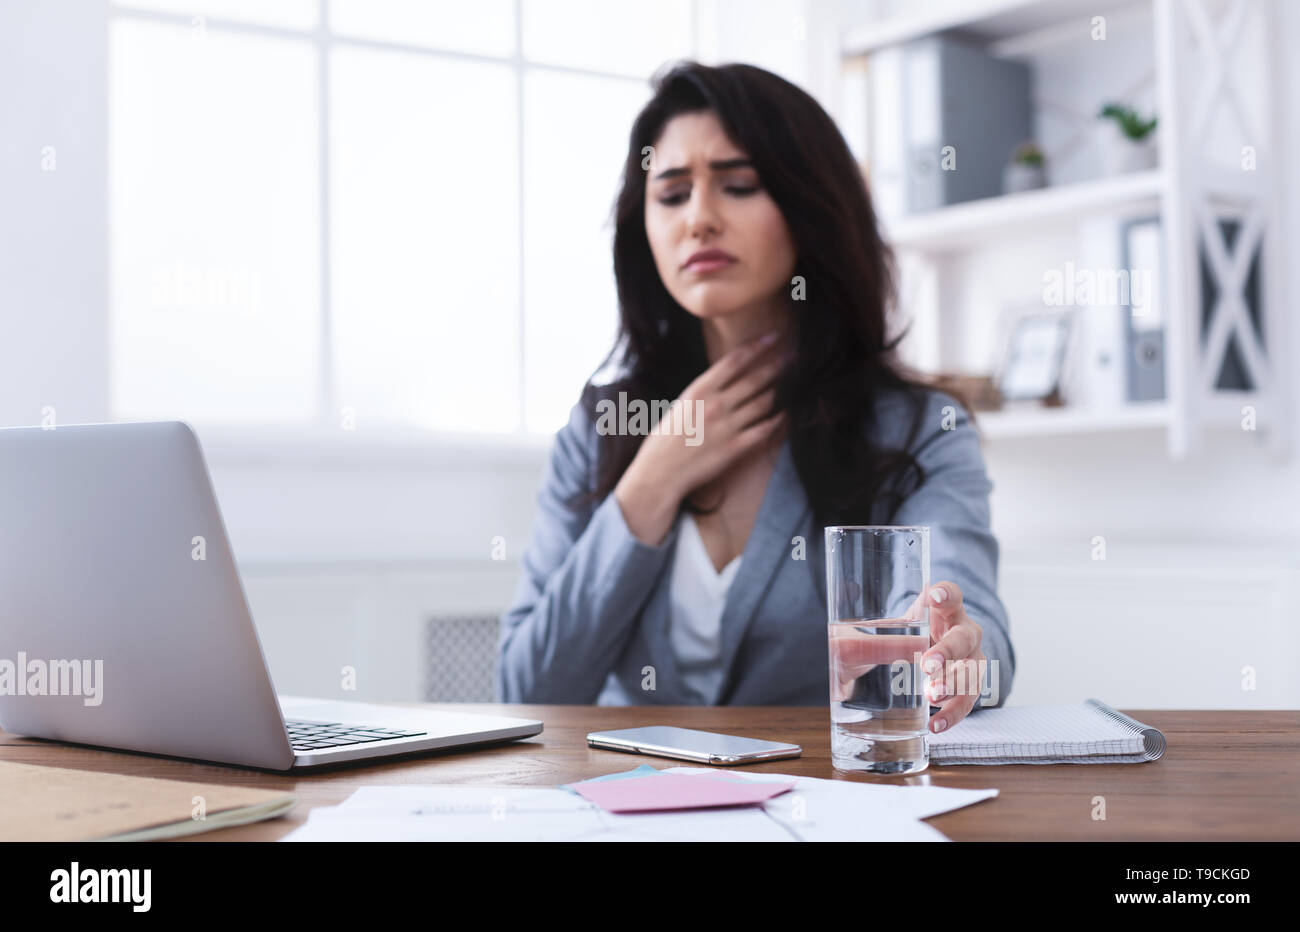 Sick Businesswoman With Sore Throat Trying To Work - Stock Image